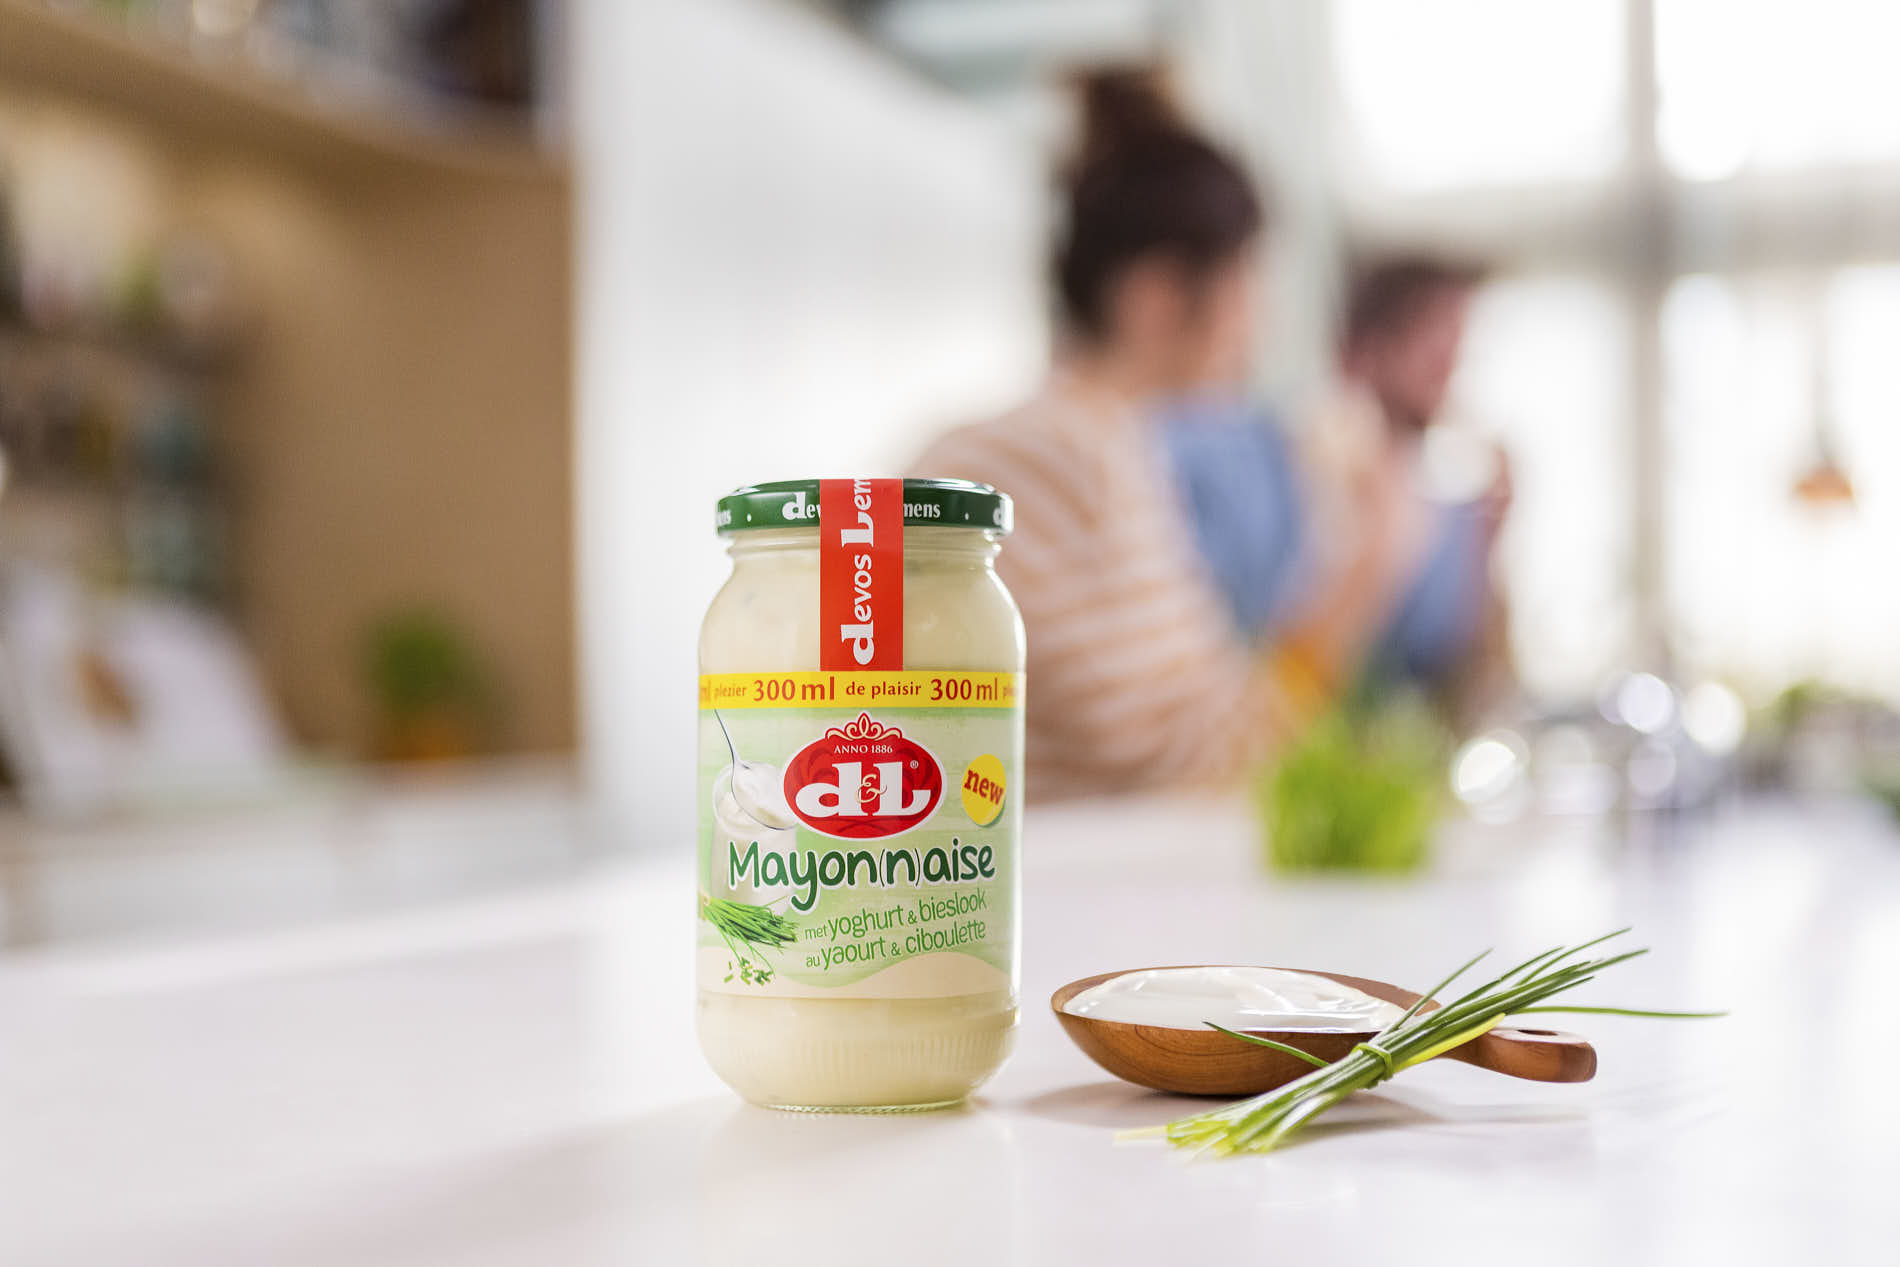 product shot of a Devos&Lemmens mayonaise jar with blurred people in the background of the kitchen